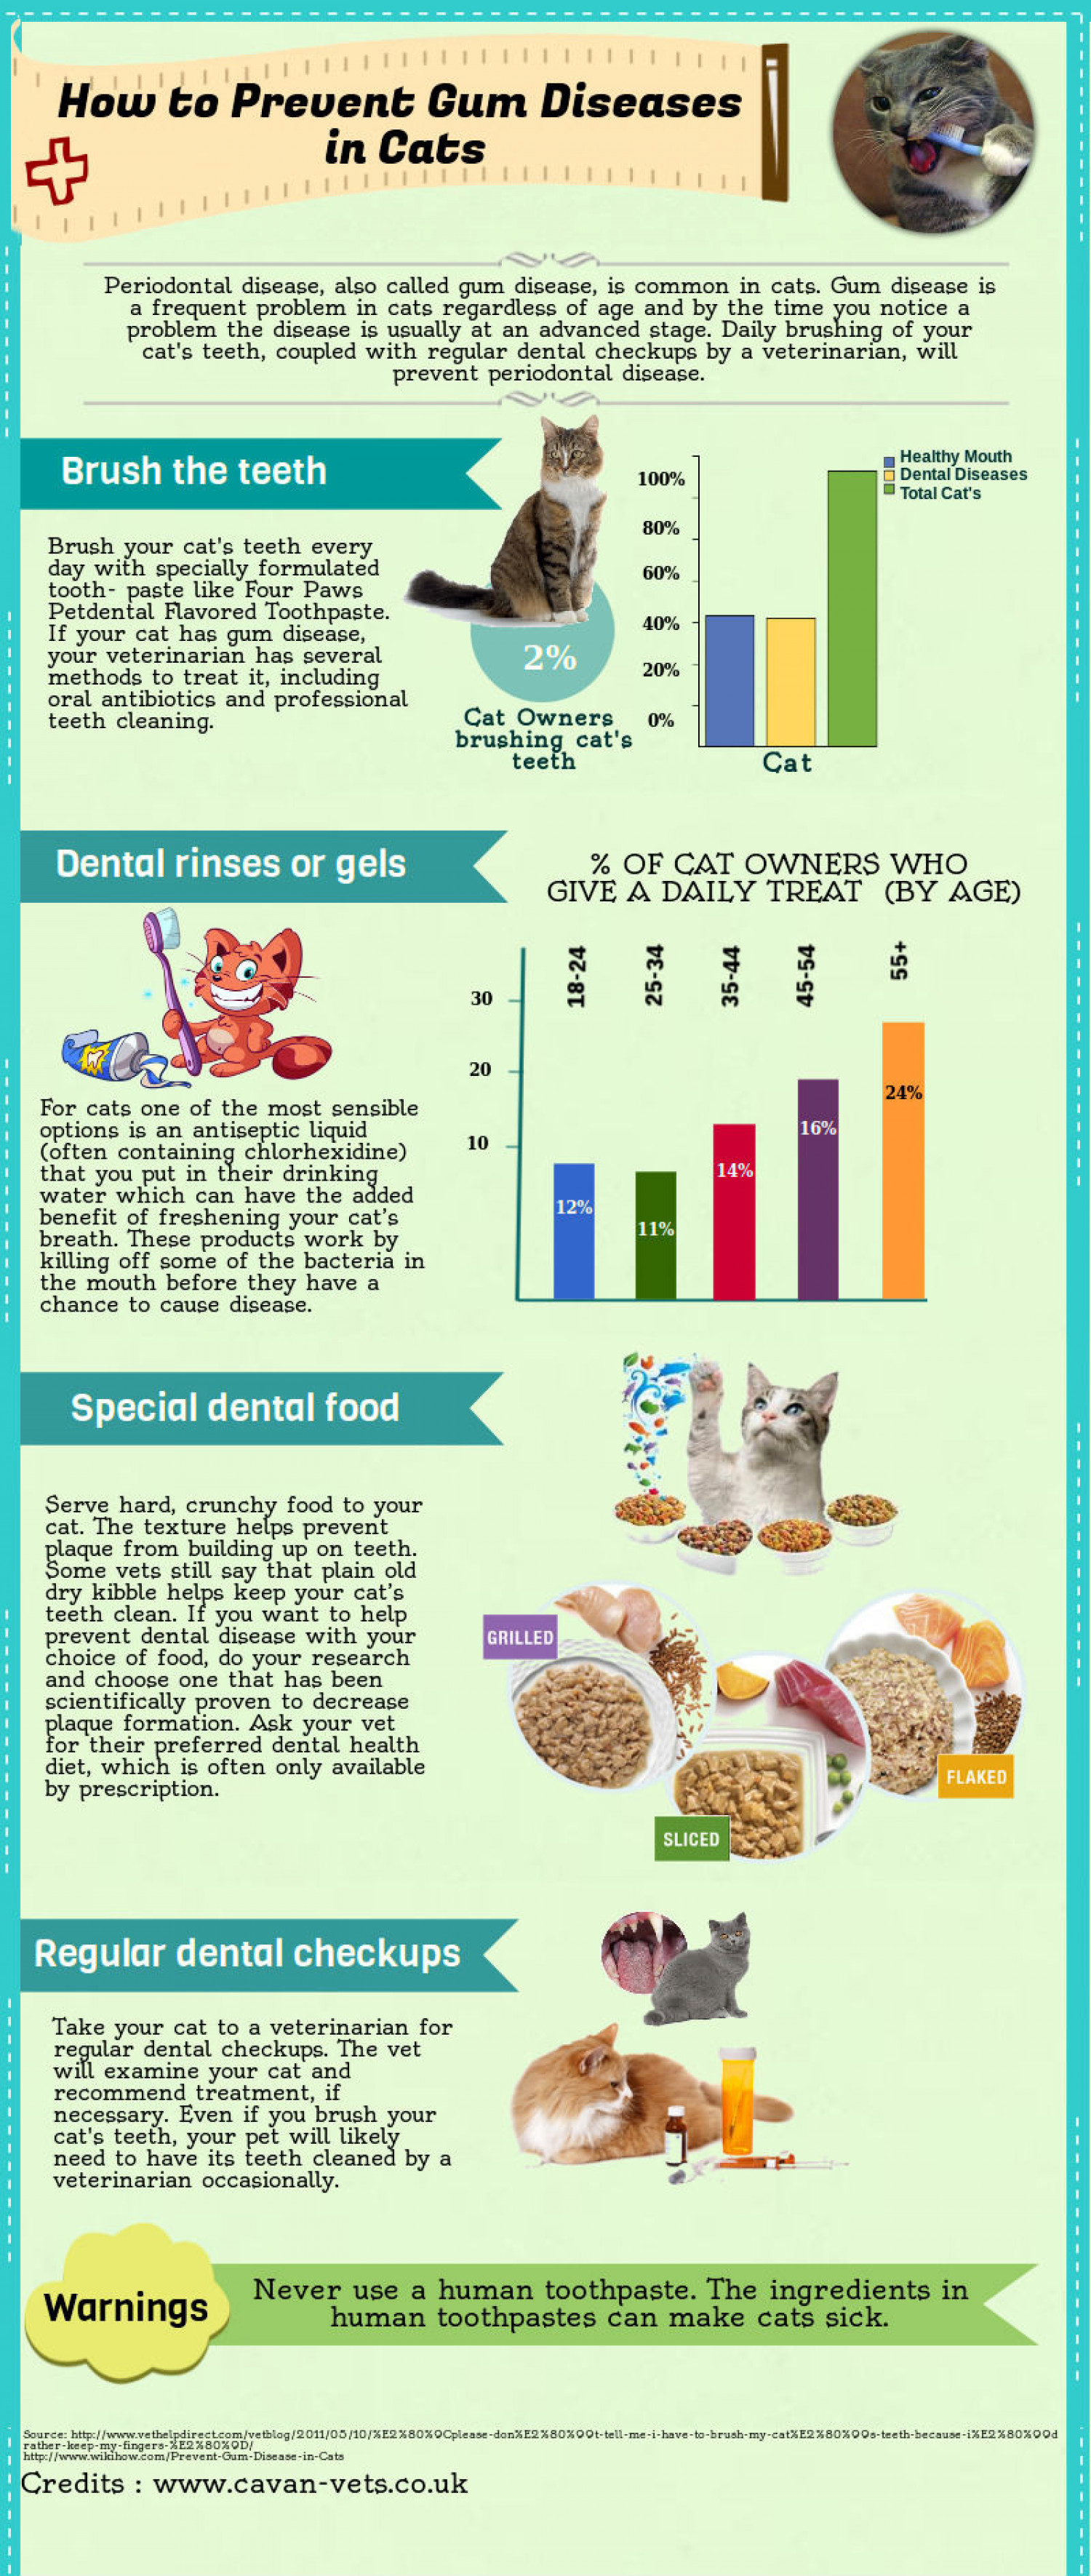 How to Prevent Gum Disease in Cats Infographic